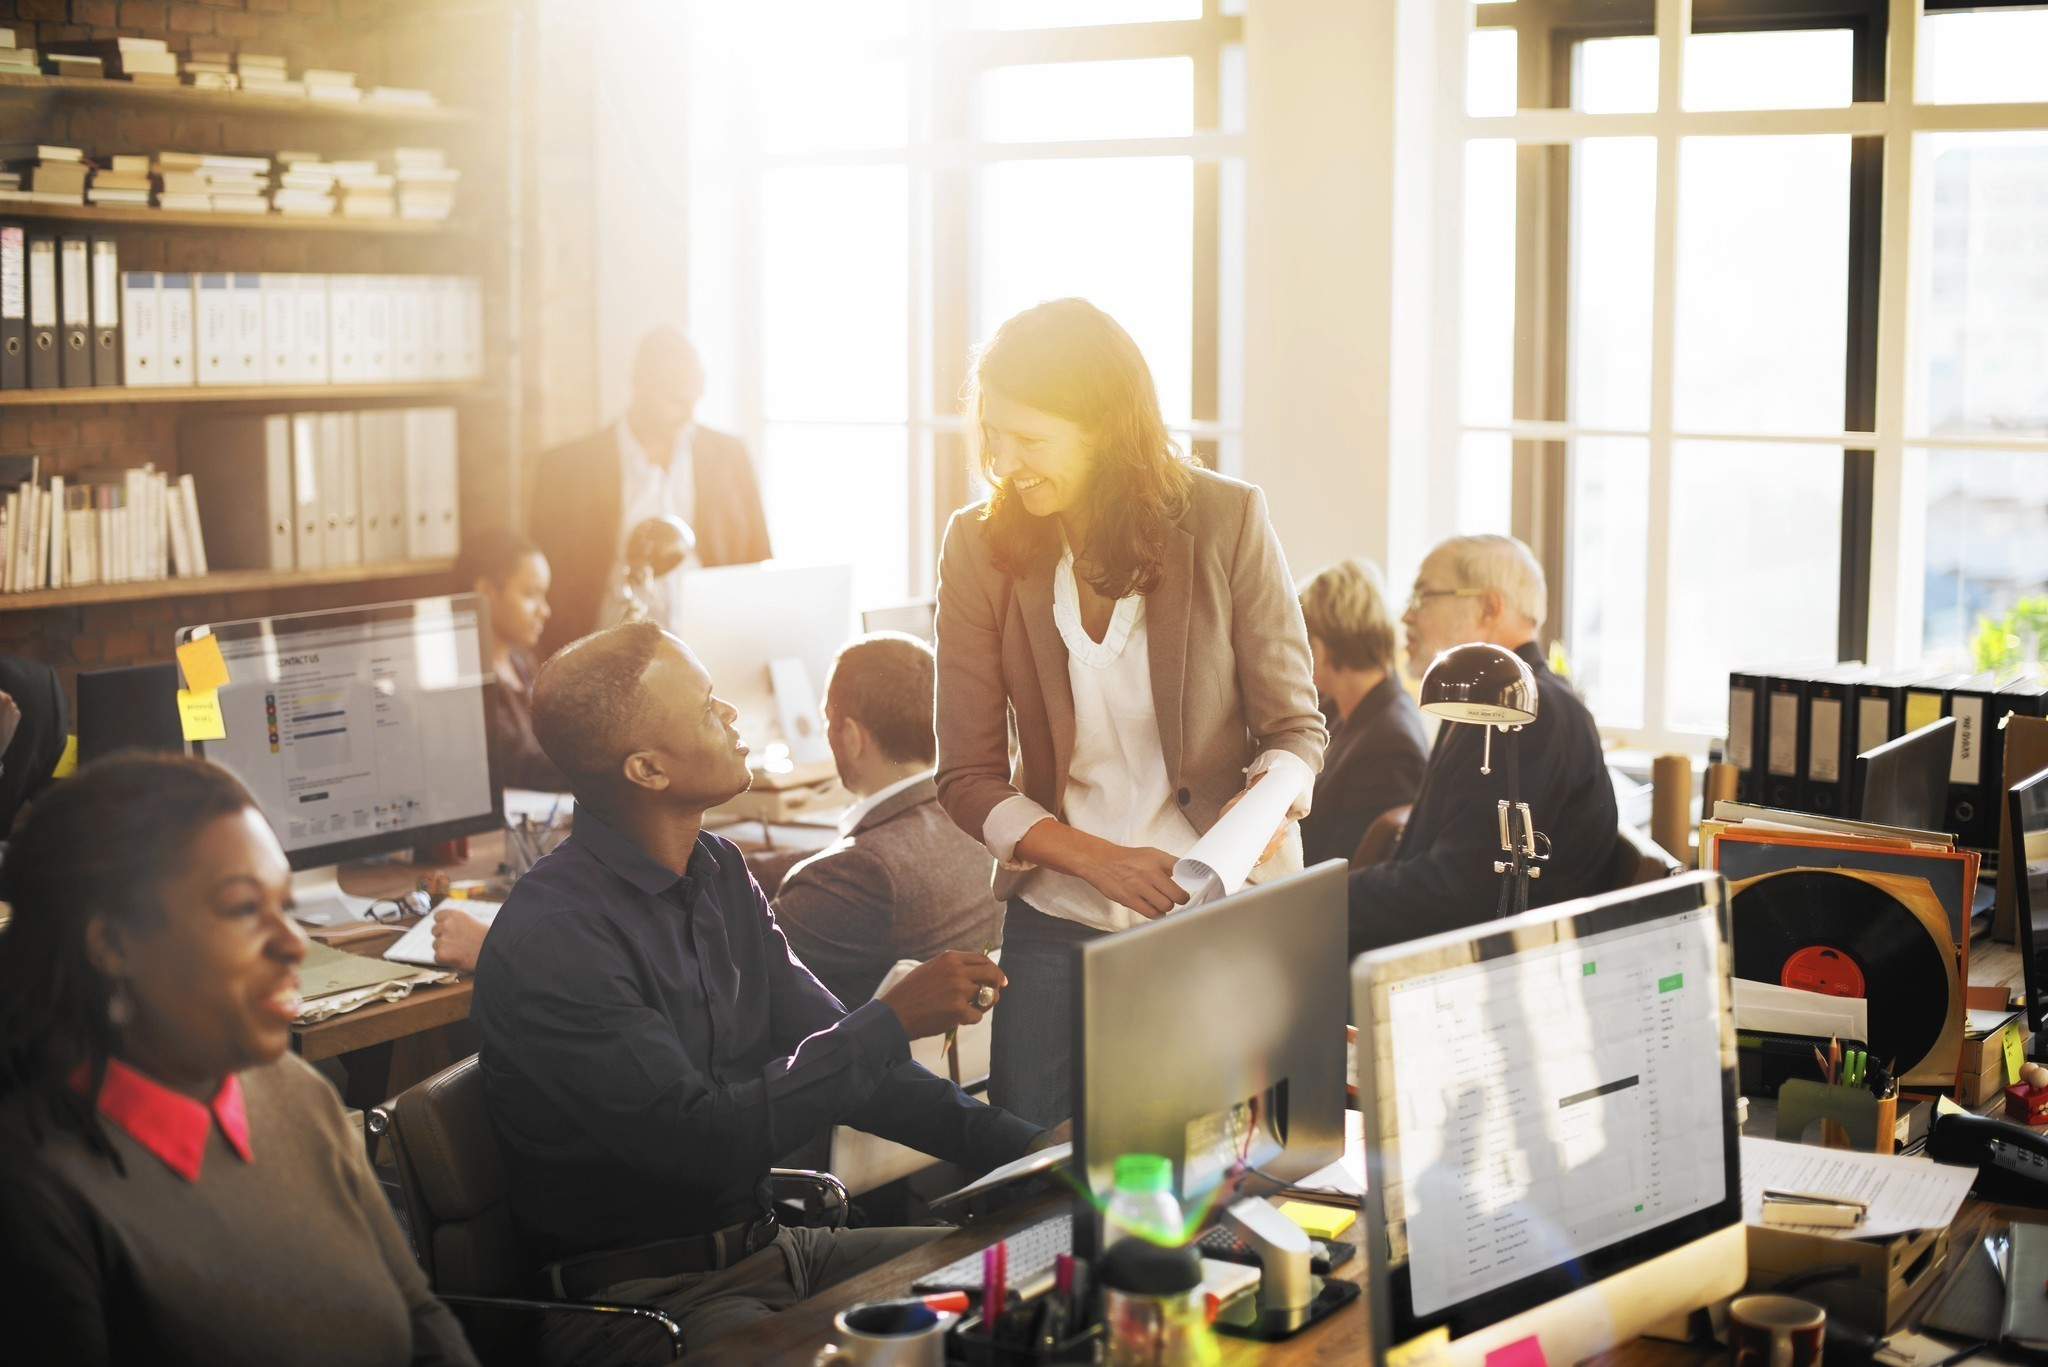 Top Workplaces And All Workplaces Must Focus On